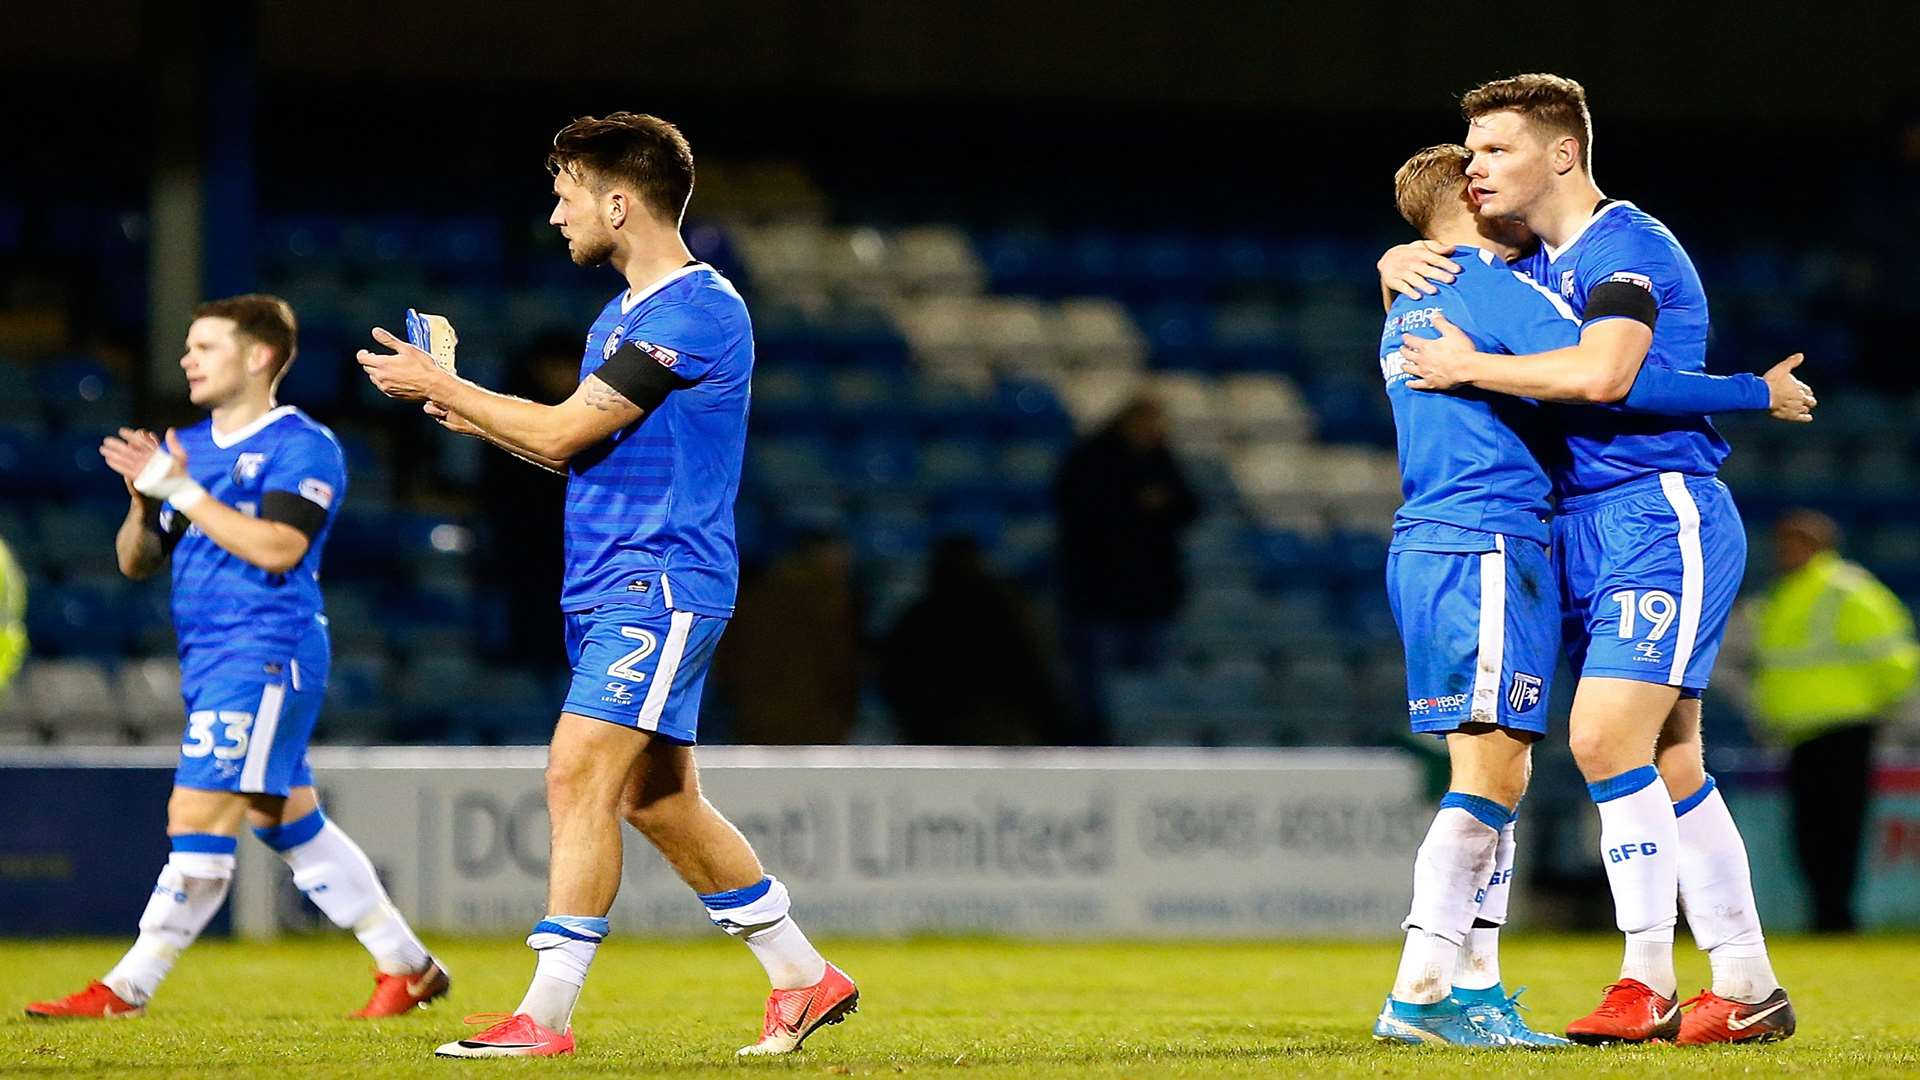 The players celebrate an impressive win at full time Picture: Andy Jones